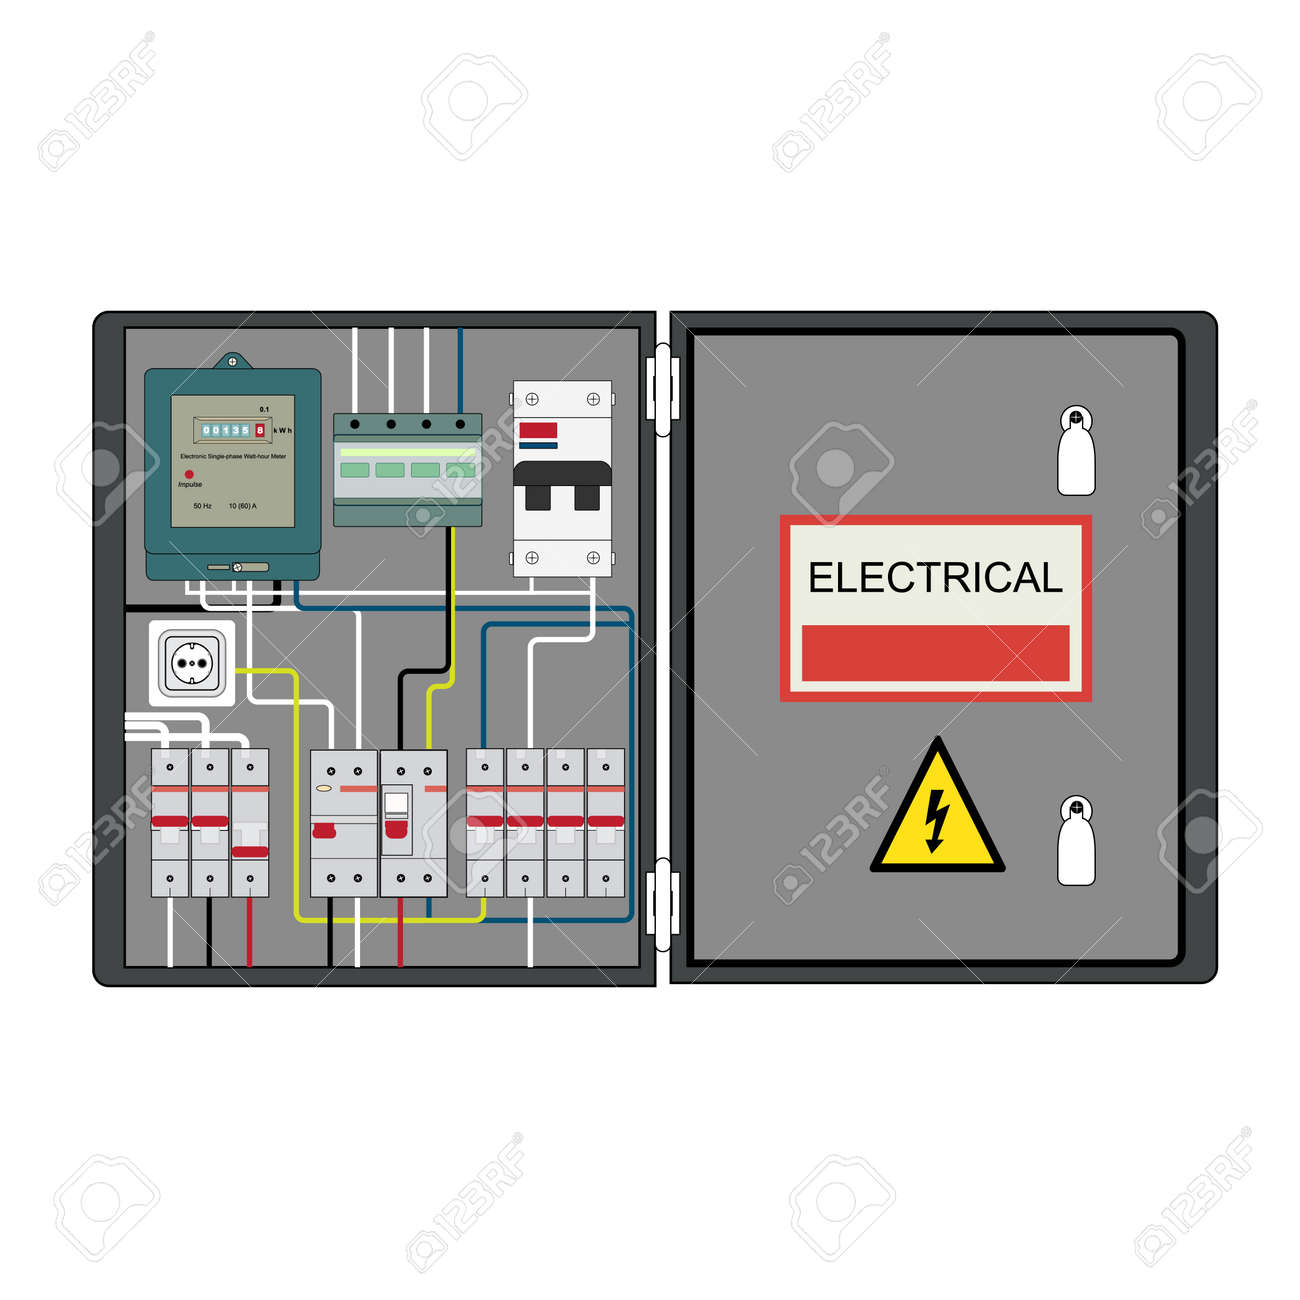 Circuit Breaker Cabinet Contact Breaker Stock Photos Images Royalty Free Contact Breaker